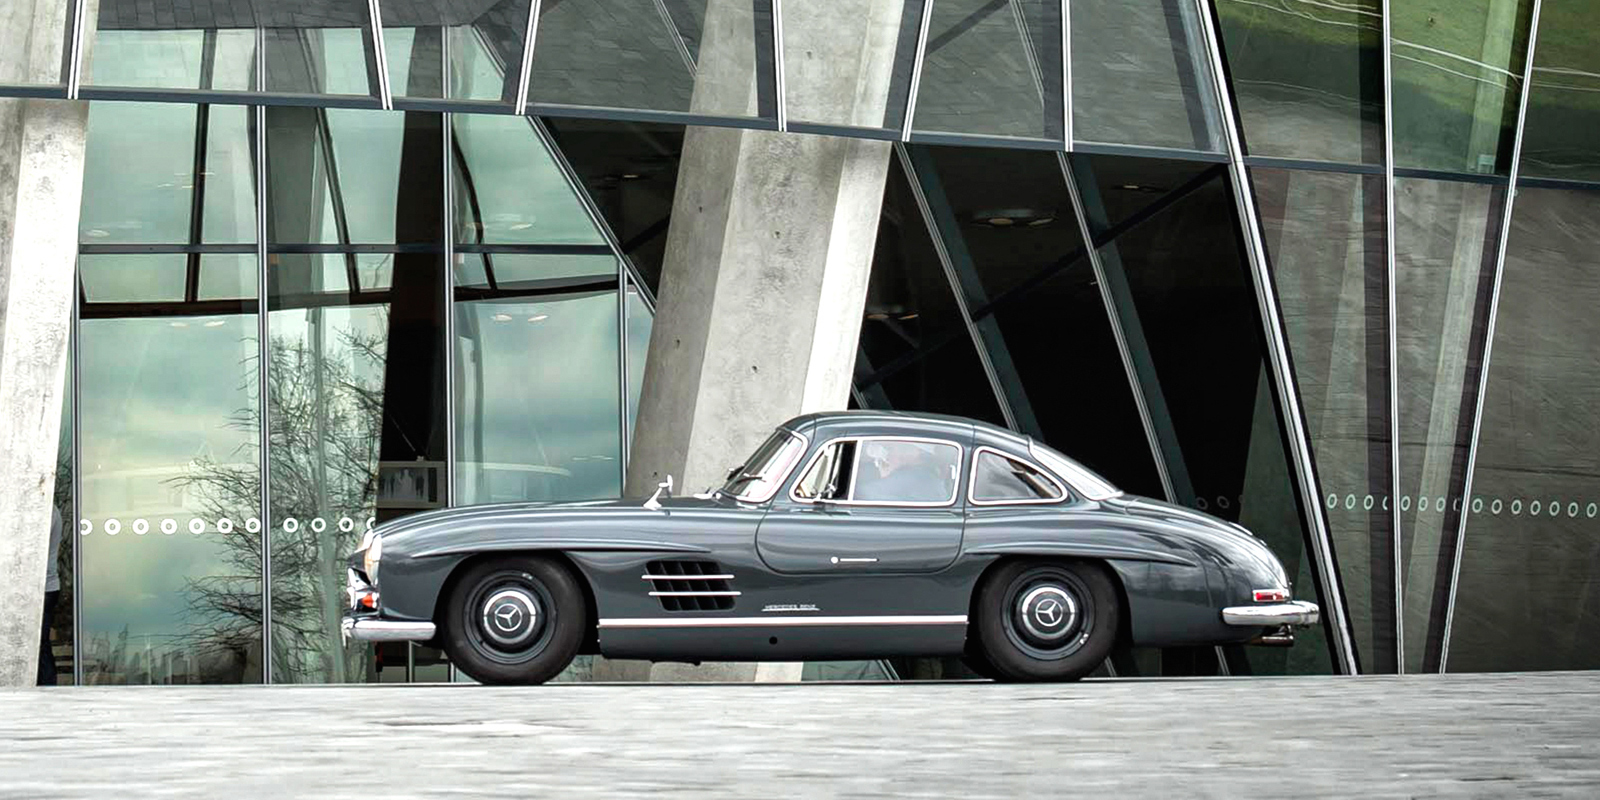 Cars For Sale Los Angeles >> All Time Stars - Vintage Mercedes-Benz cars for sale ...